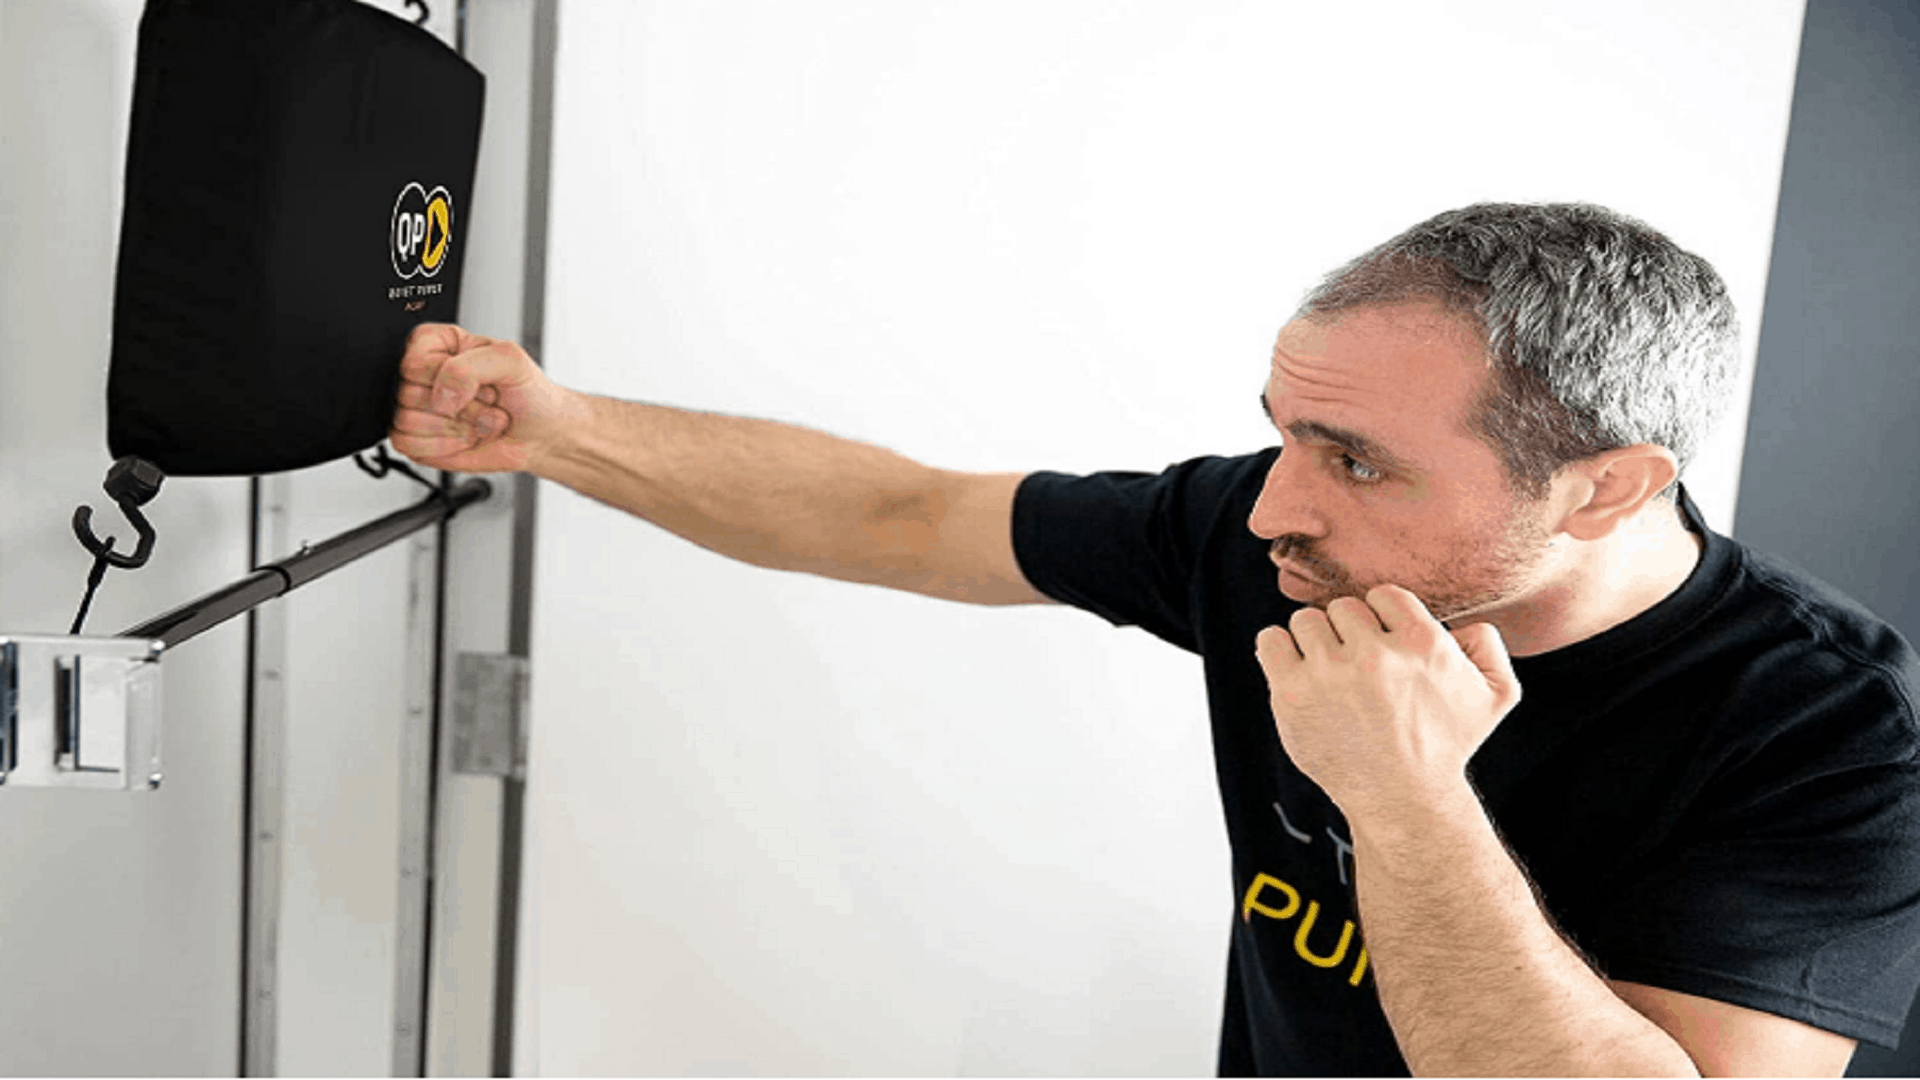 quite punch portable punching bag